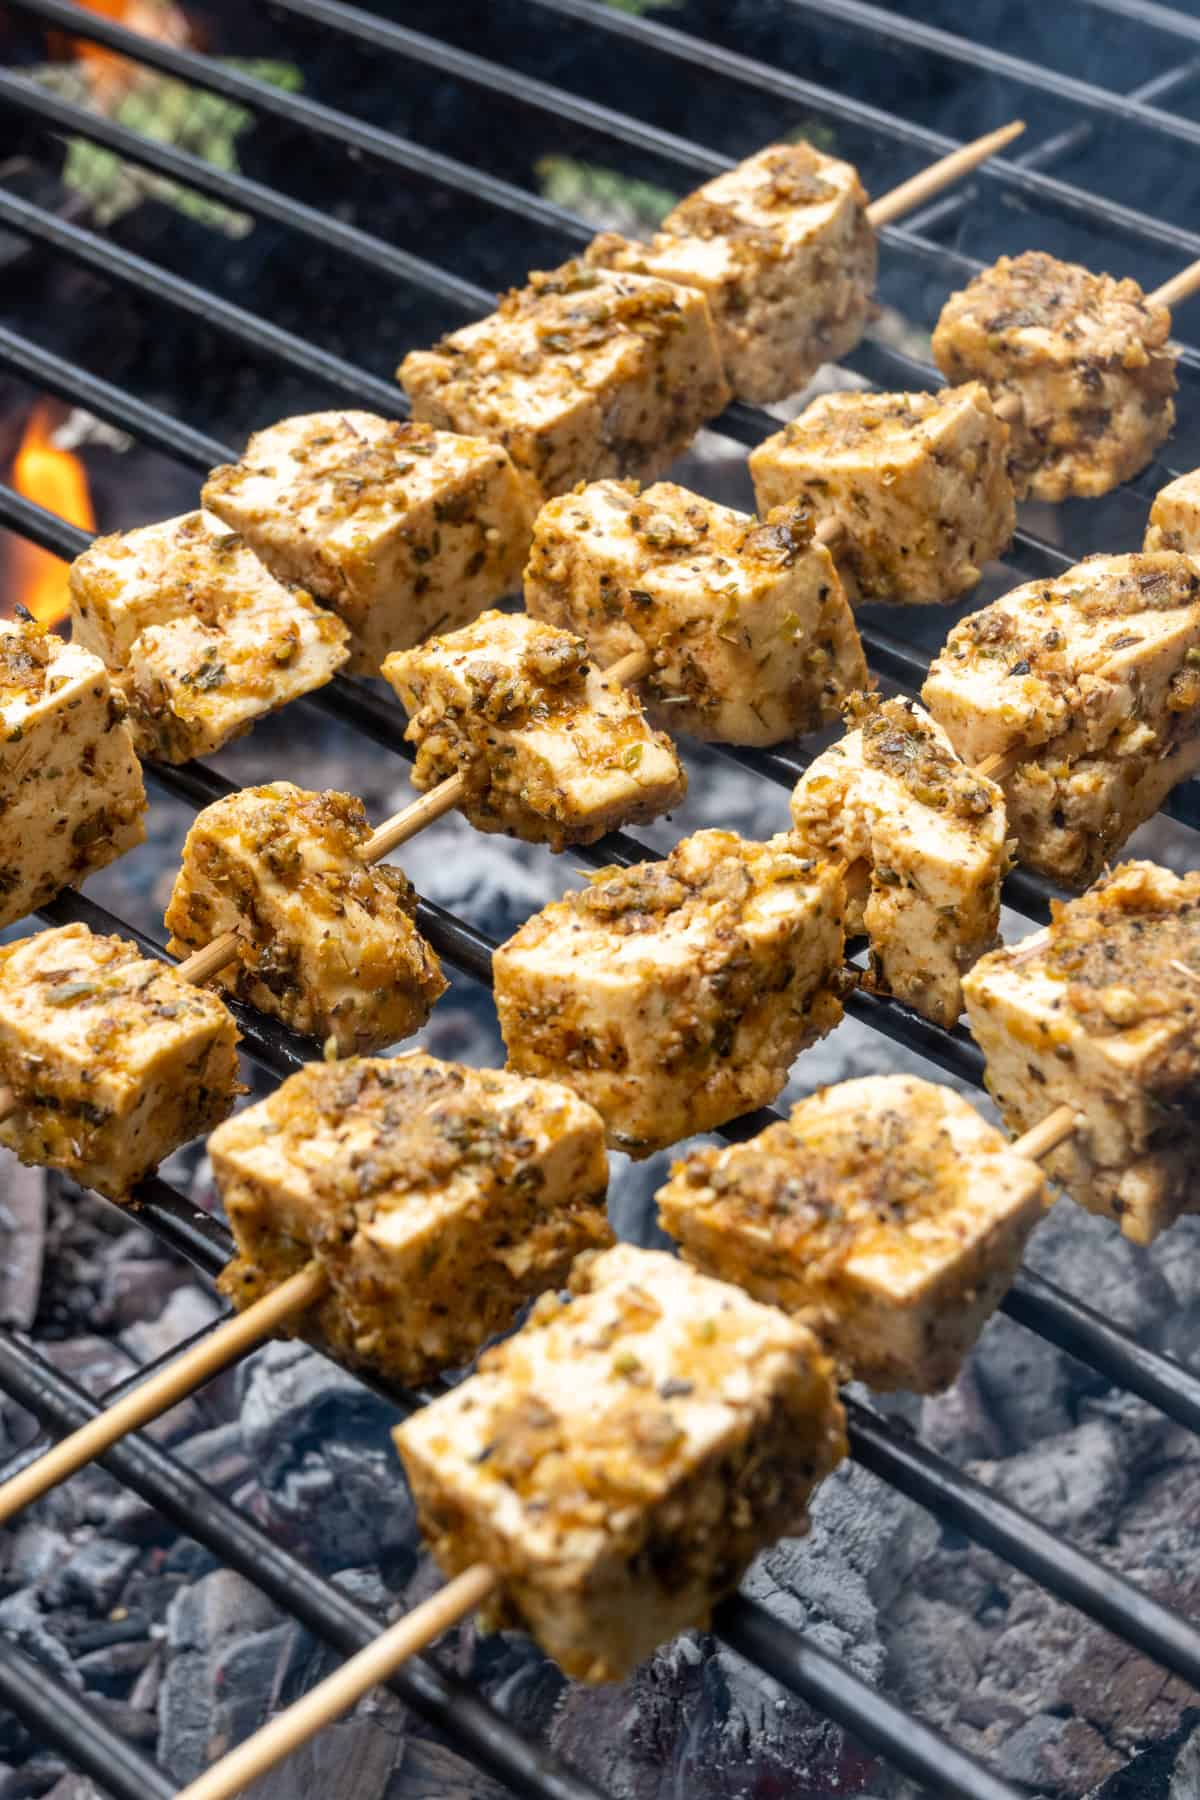 Skewers loaded with tofu cubes covered thickly in a herby marinade cooking on a roast over hot coals in a firepit.